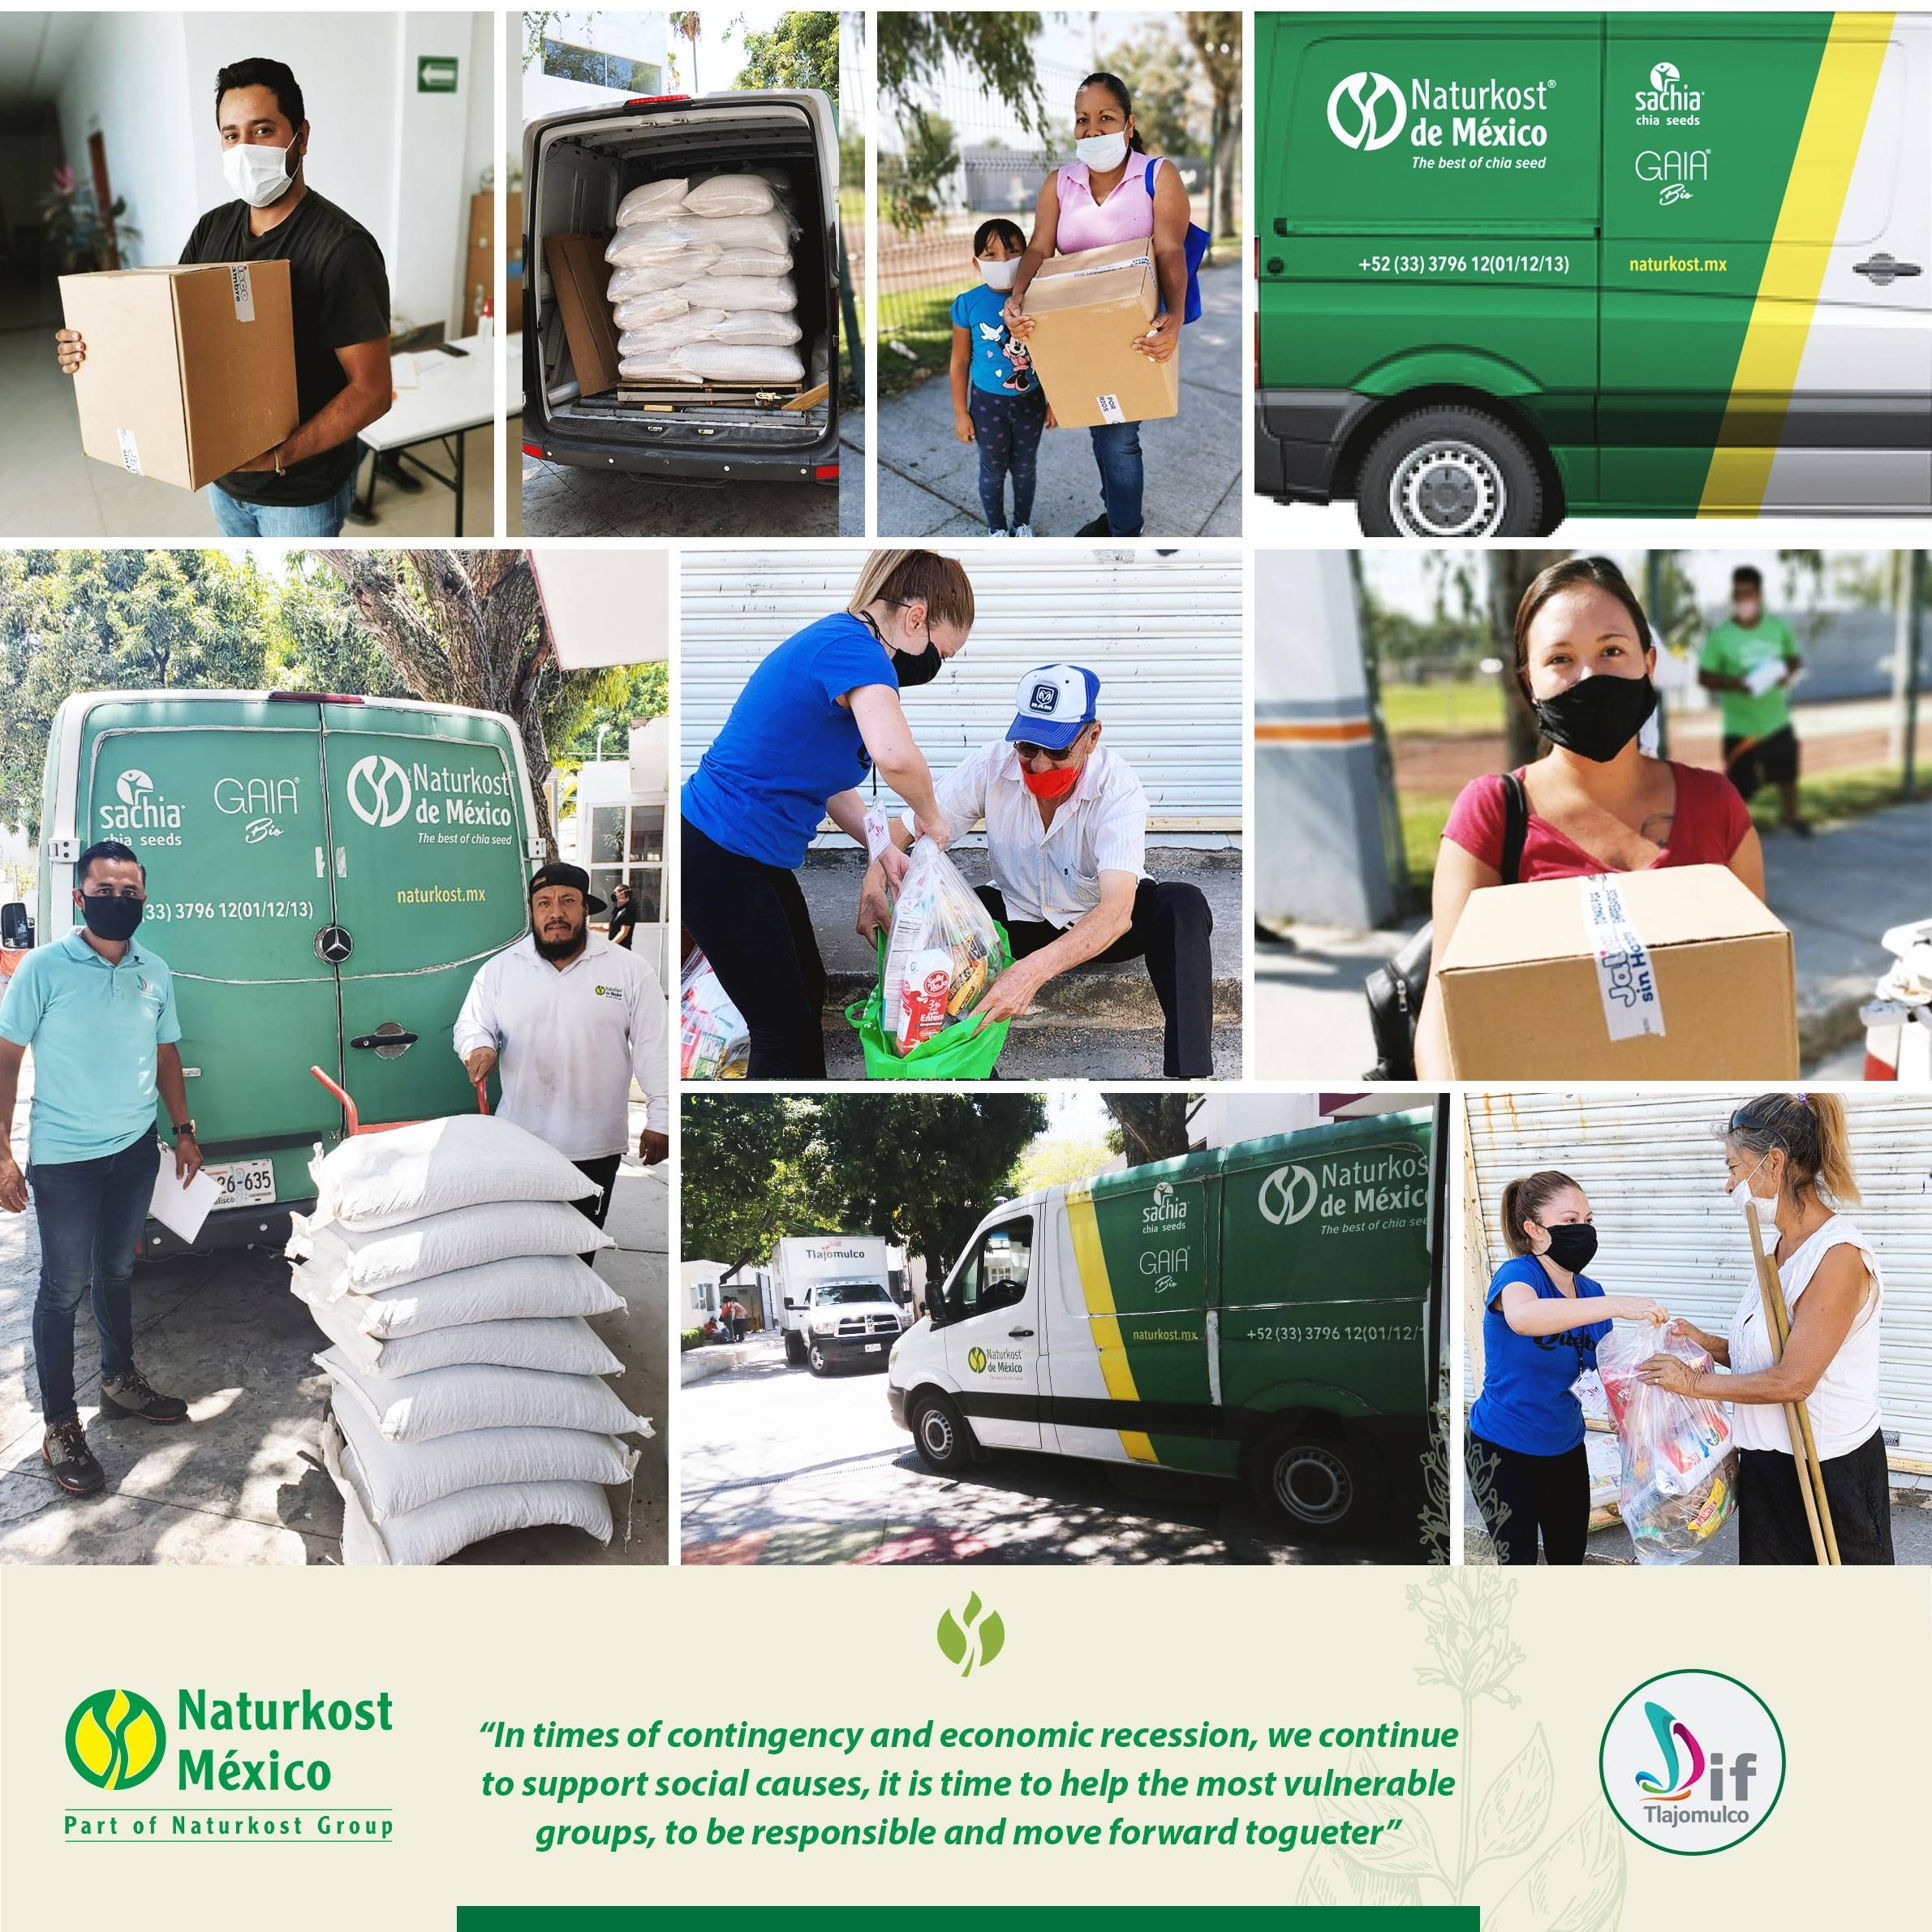 Naturkost Mexico supporting social causes